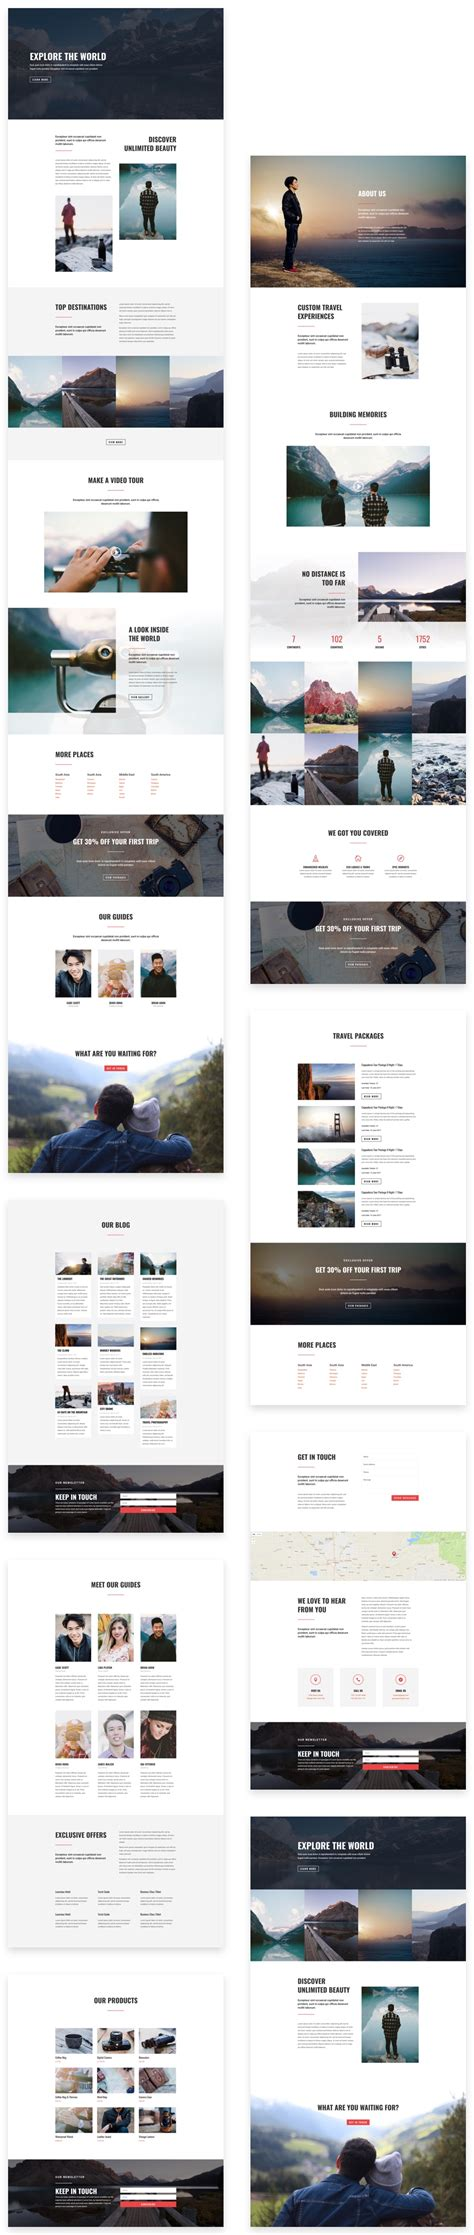 blog layout divi theme stunning free divi layout pack for travel websites